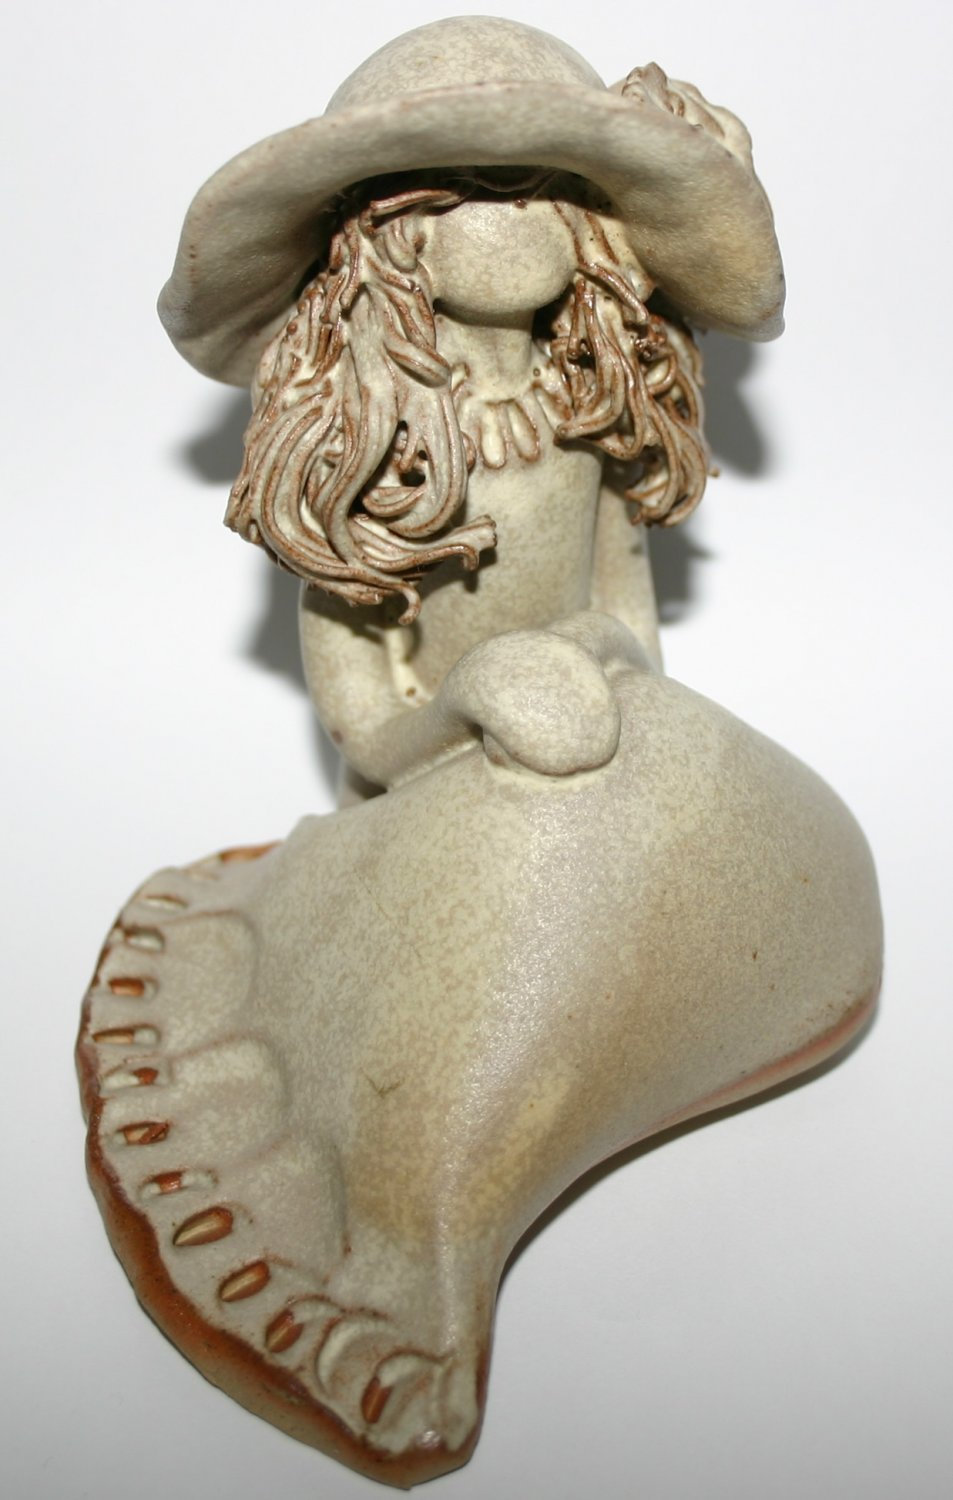 Vintage 1970s Handcrafted Stoneware Art Pottery Lady Sculpture Decorative Ornament